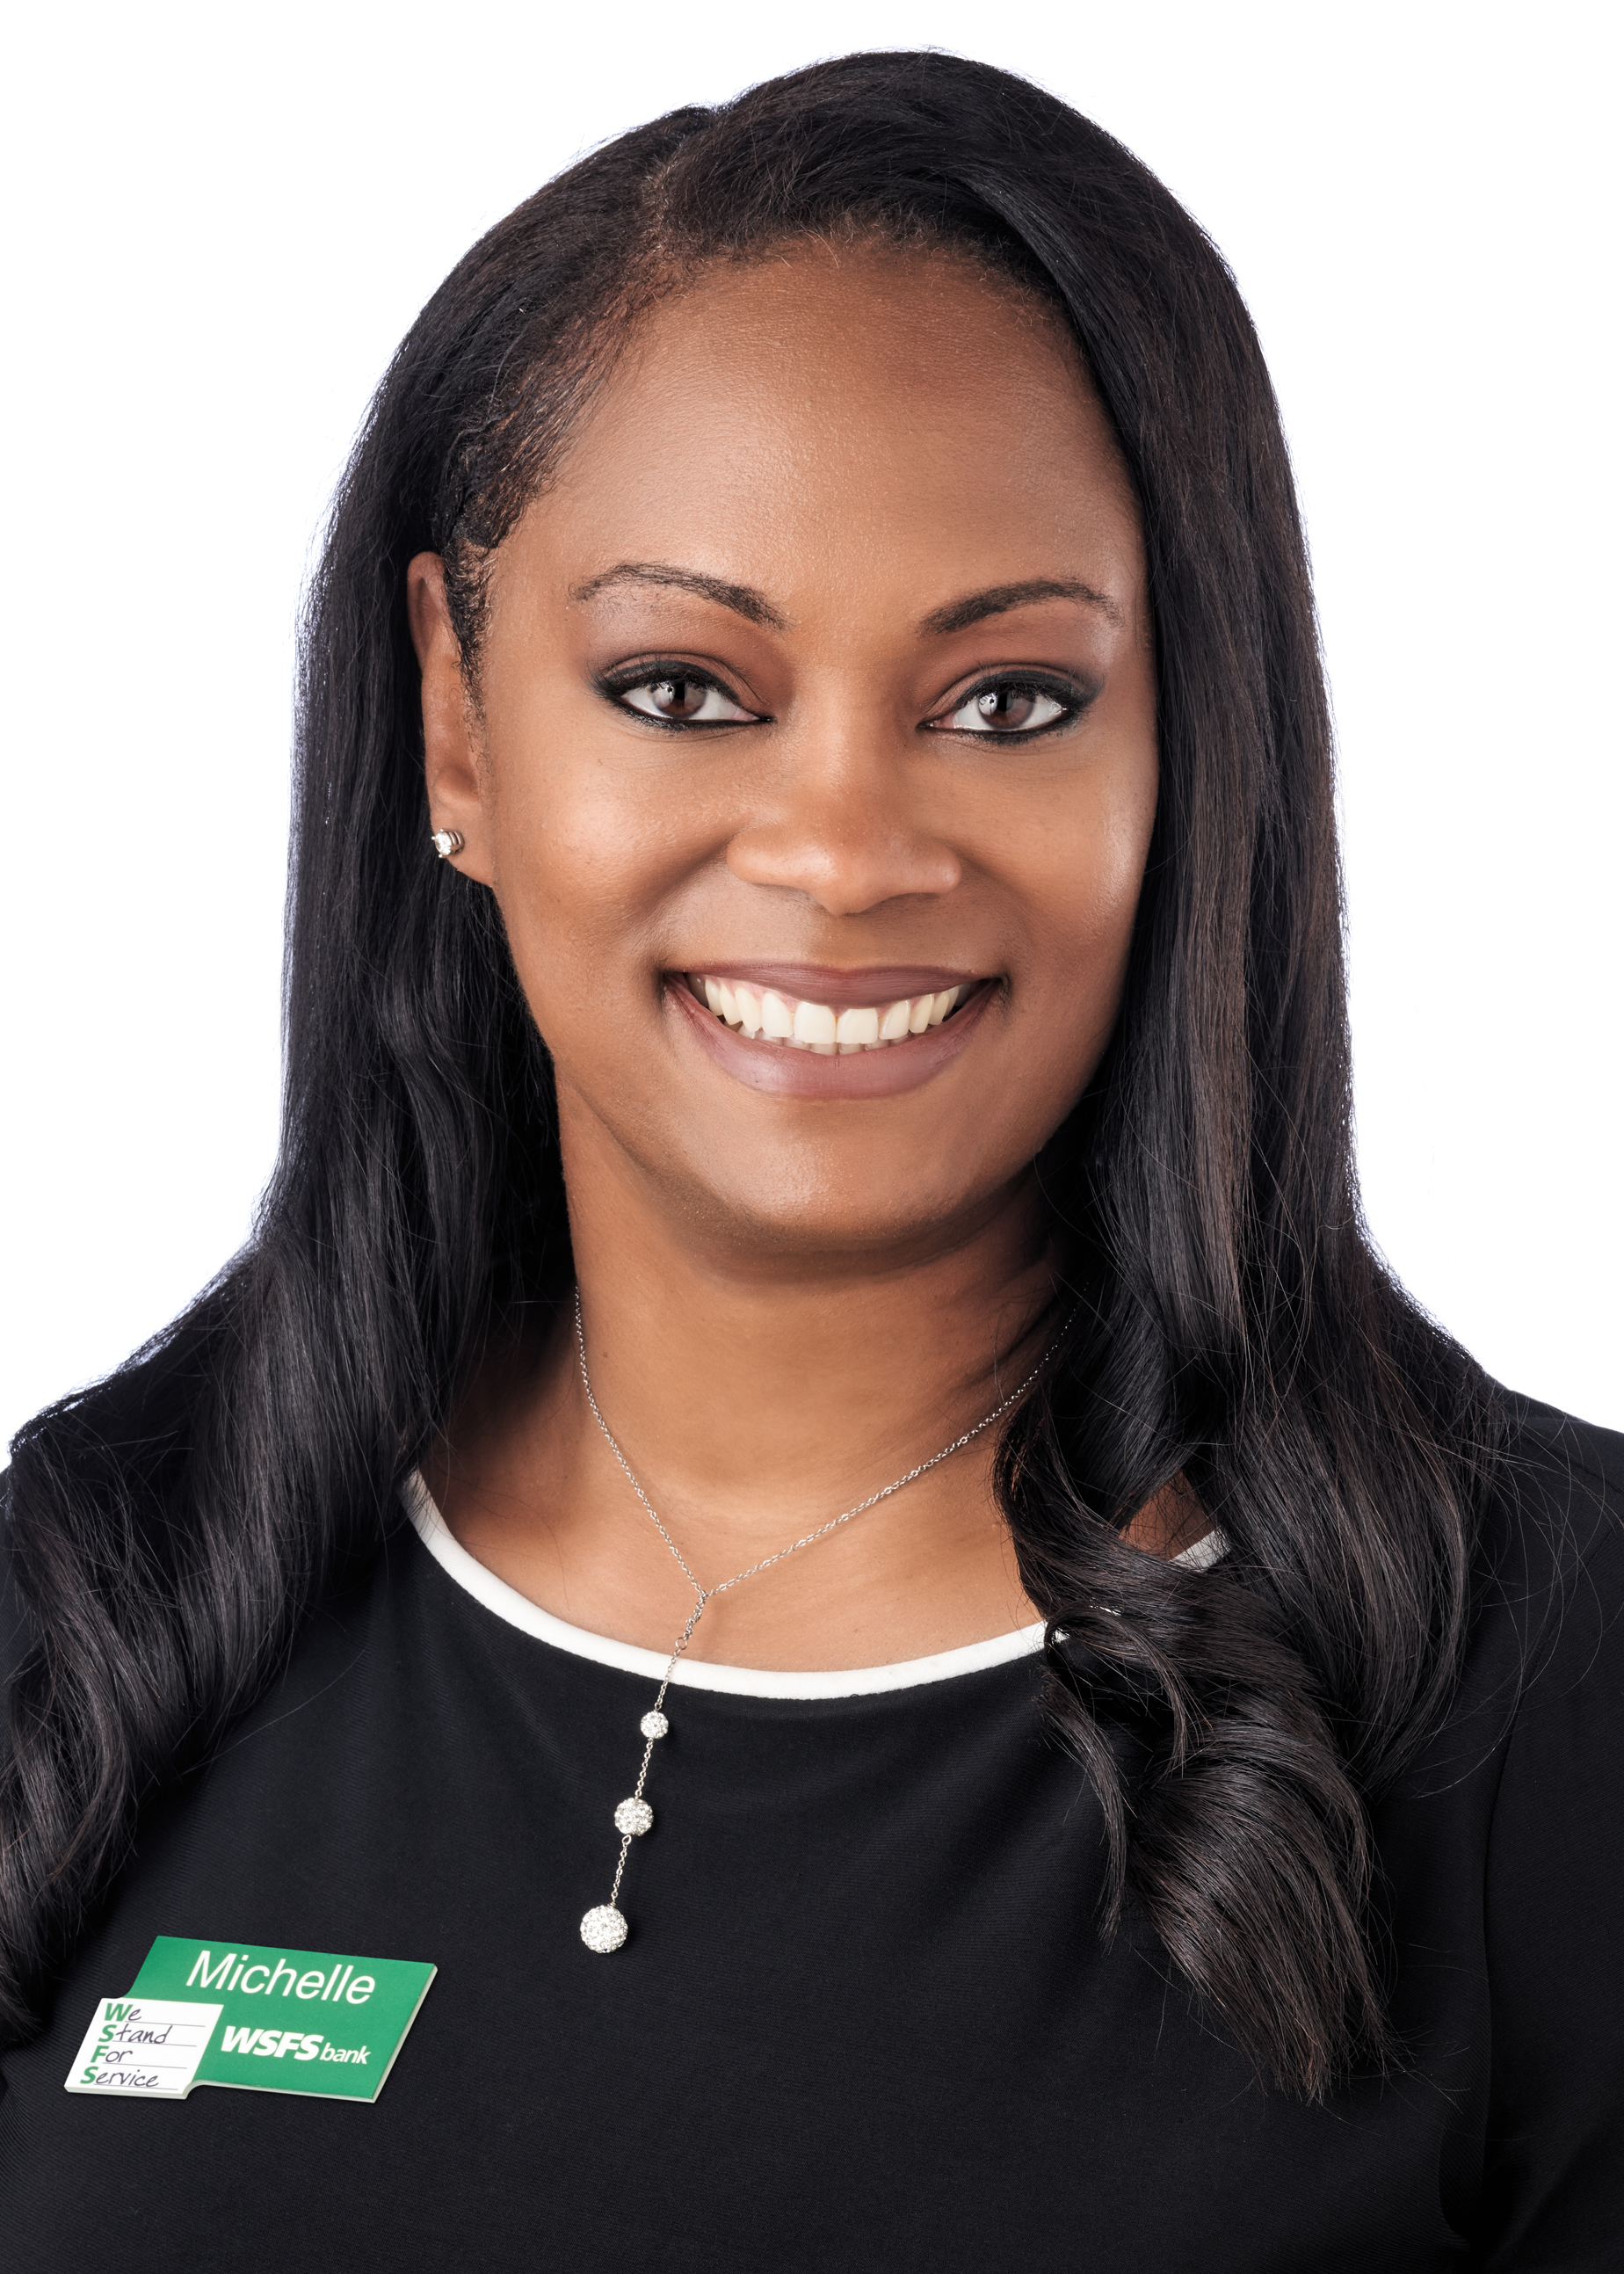 Dr. Michelle L. Burroughs, Vice President, Director of Diversity, Equity and Inclusion (DE&I), WSFS Bank